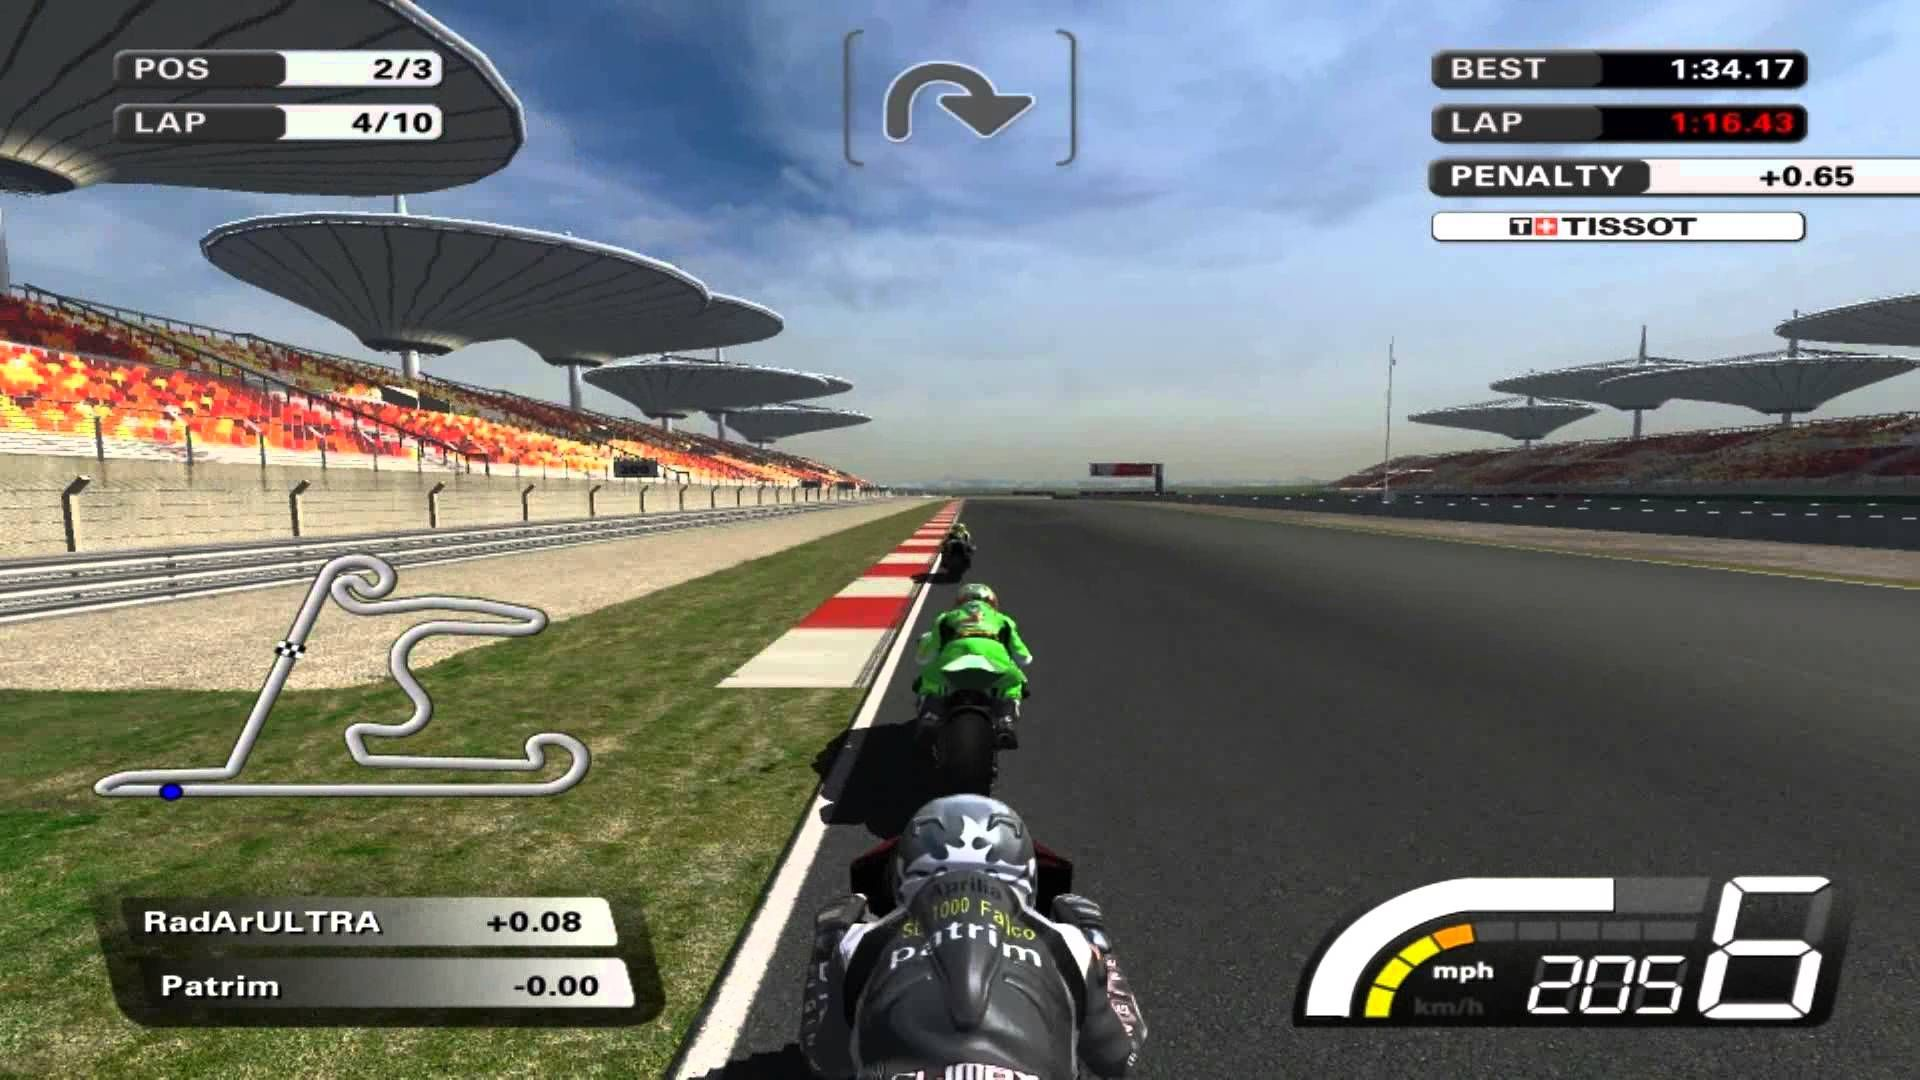 Http Bubblecraze Org If You Like Bubble Games For Android Iphone You Ll Love This One Motogp 07 Free Download Pc Gaming Pc Motogp Bubble Games